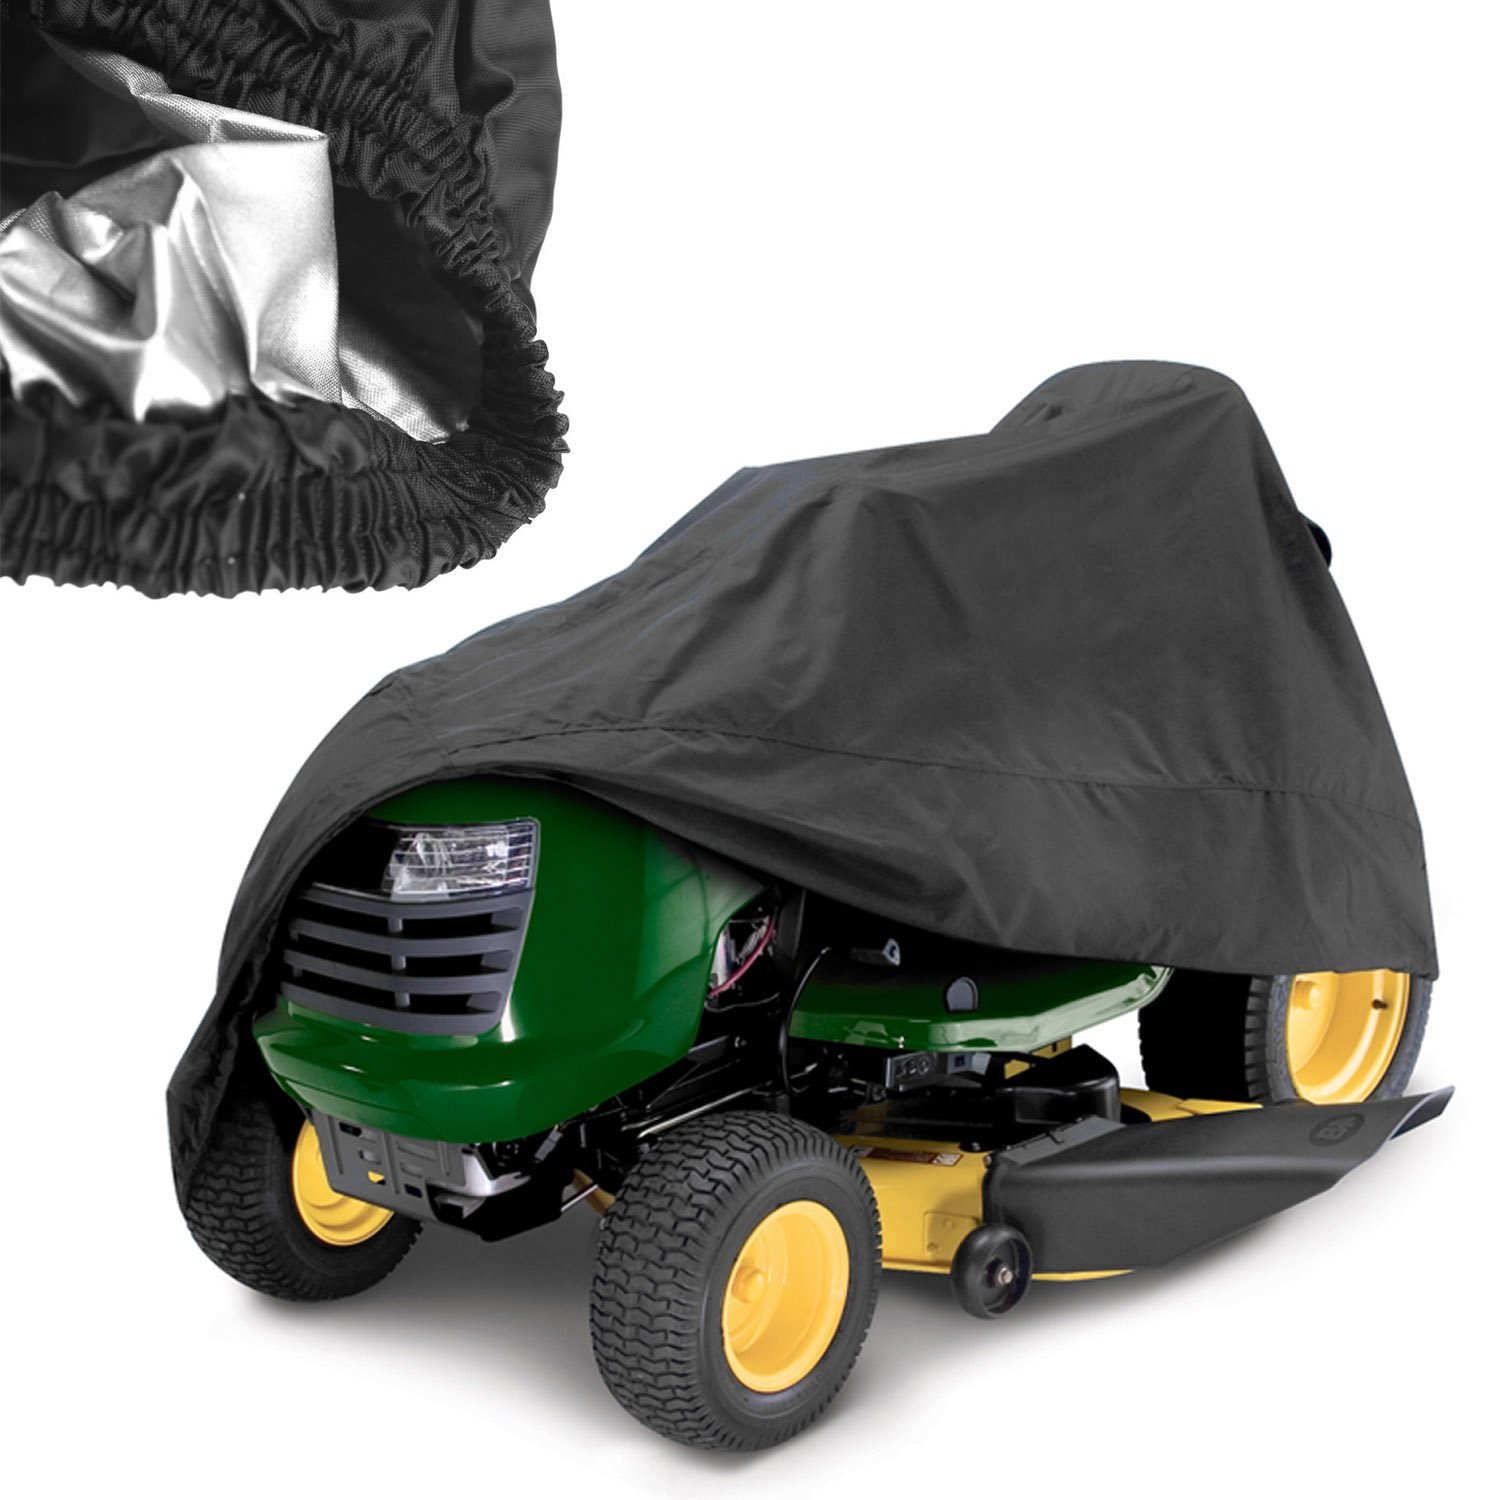 Waterproof Scooter Storage Cover, 190T Nylon Cloth Power Mobility Scooter Big Car Cover with Carry Bag (US Stock)